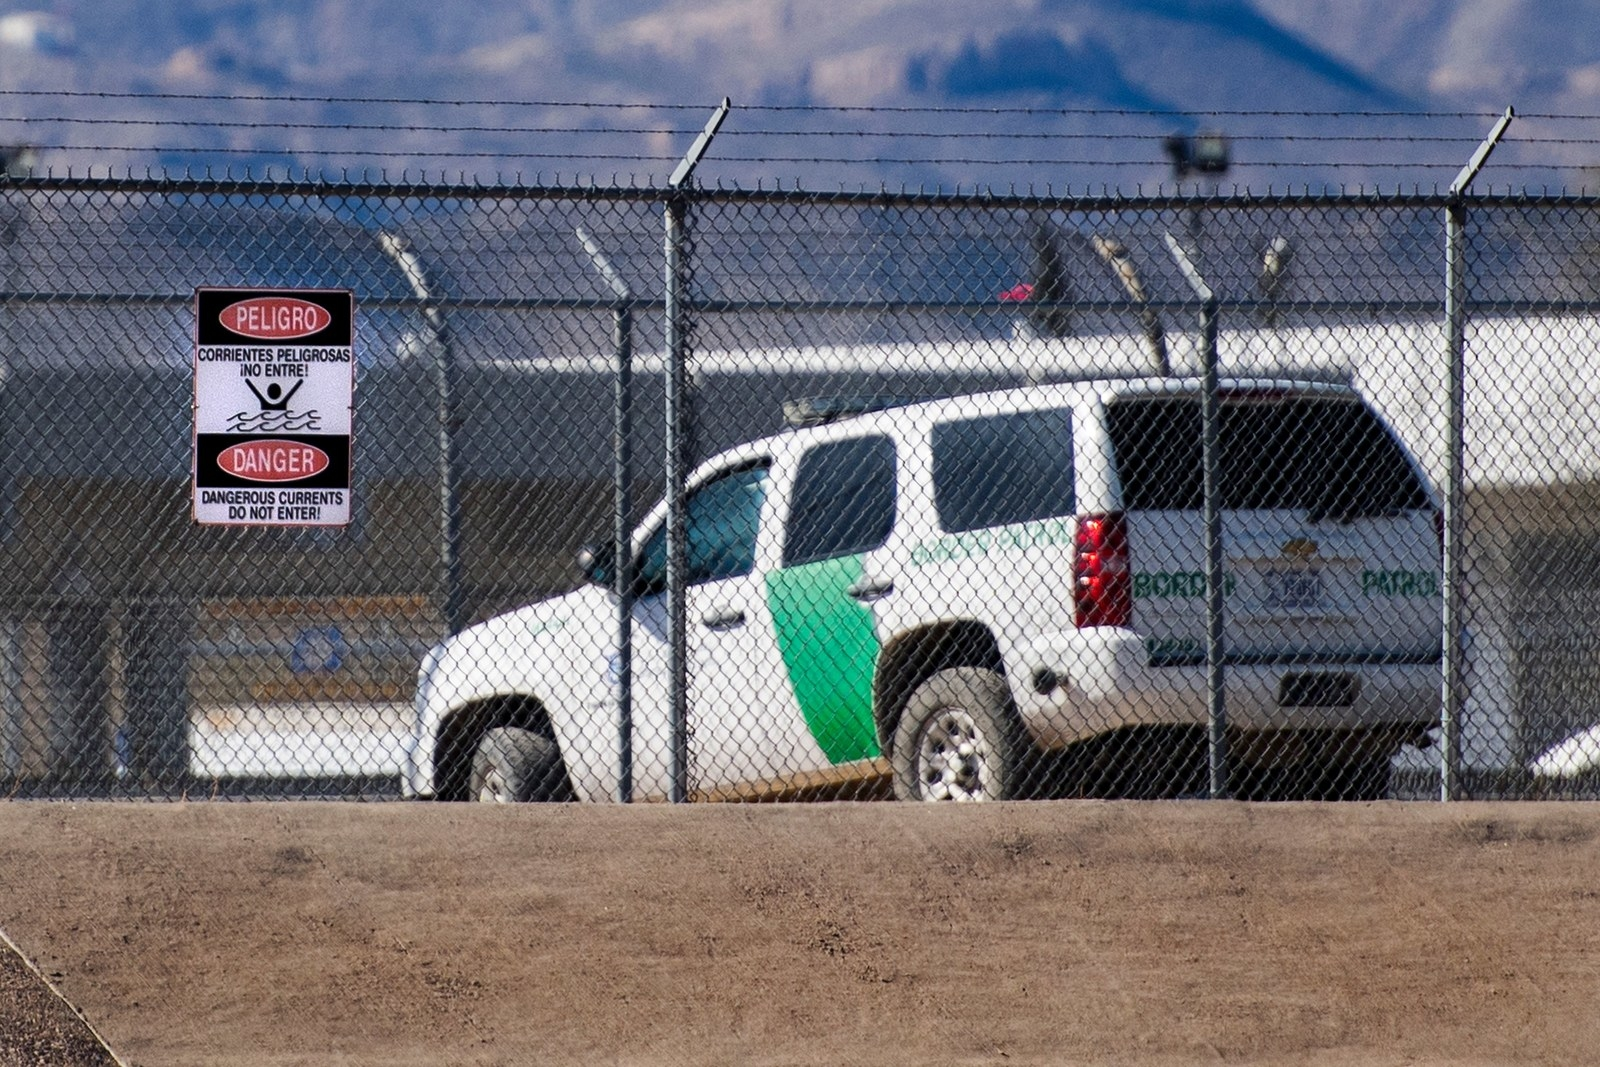 A 40-Year-Old Mexican Immigrant Died In US Custody — The Fourth Death In Recent Months